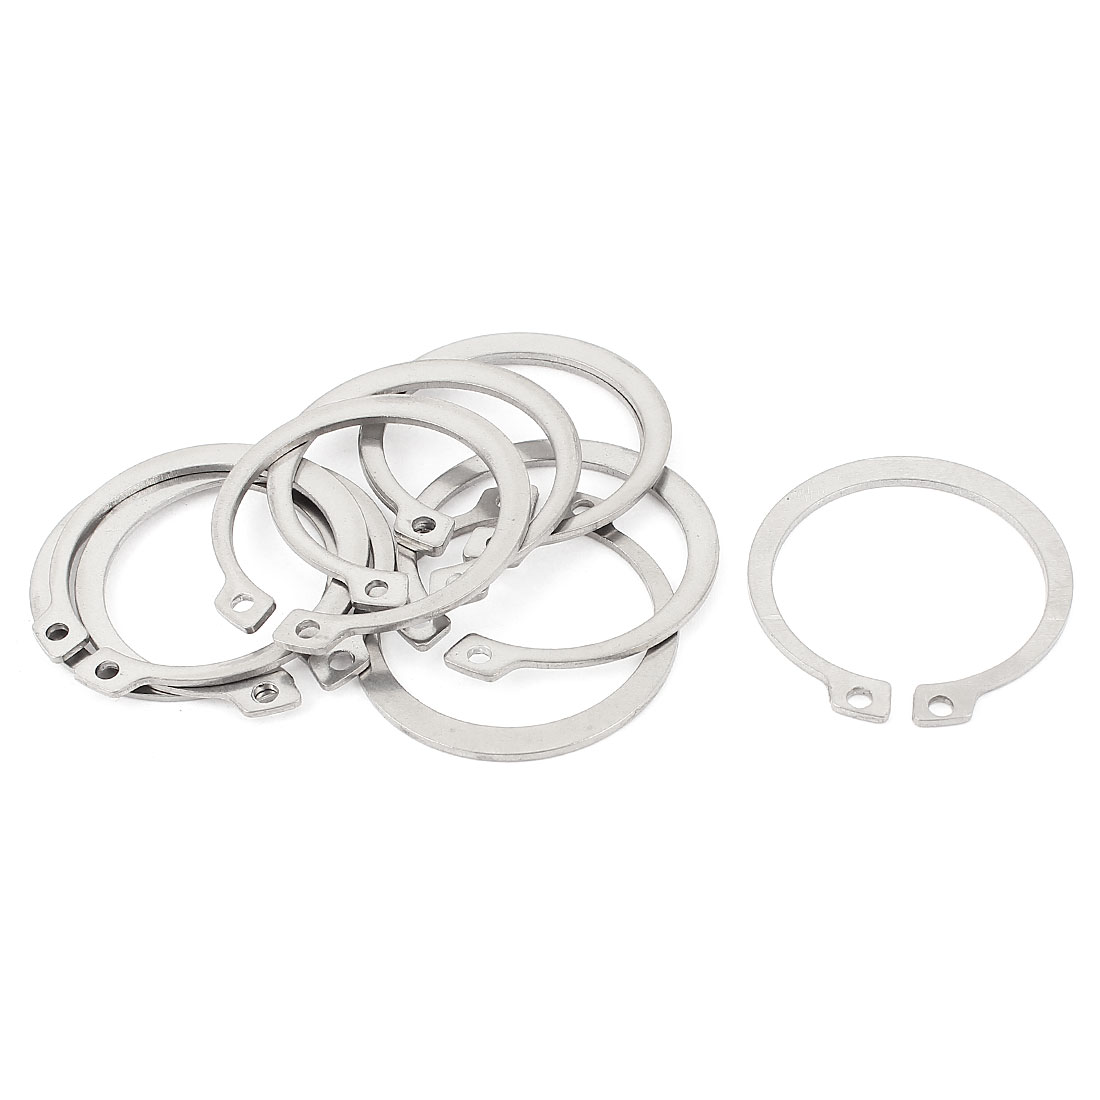 10pcs 304 Stainless Steel External Circlip Retaining Shaft Snap Rings 42mm